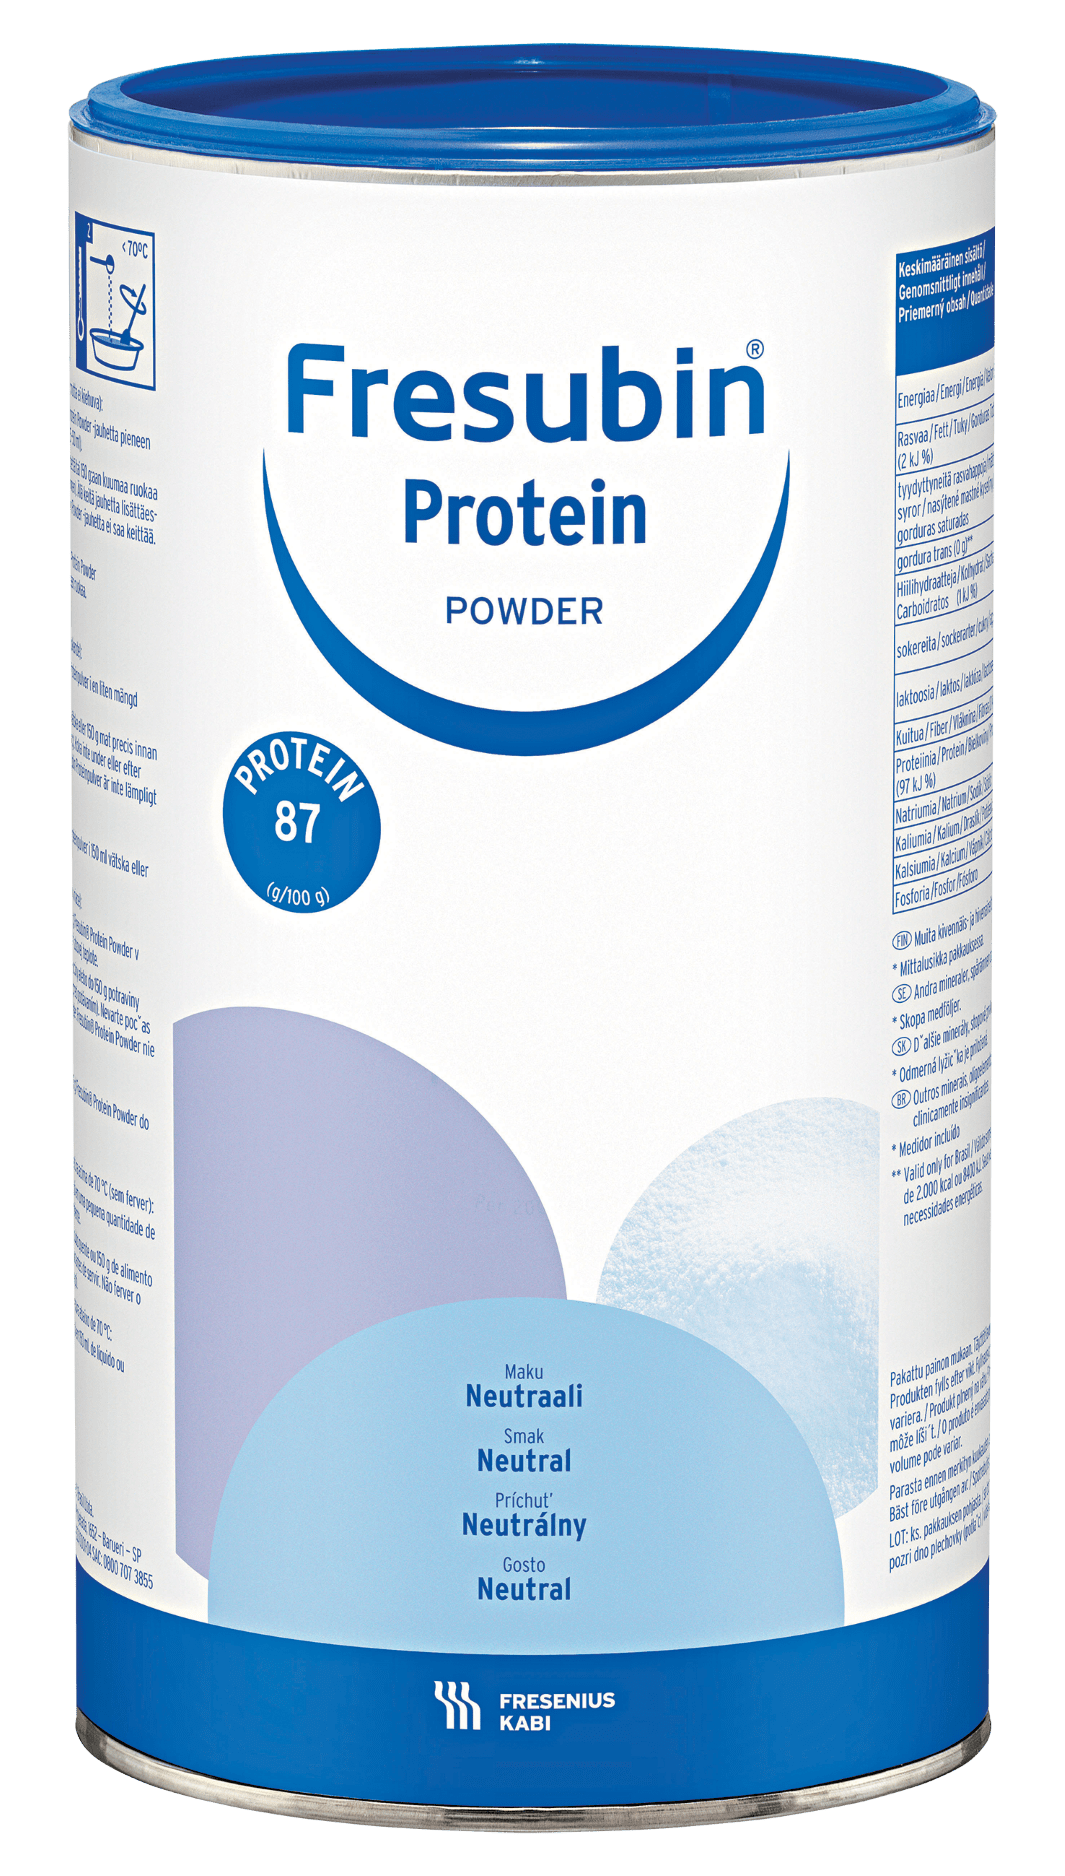 Fresubin_Protein_Powder_Neutral-2